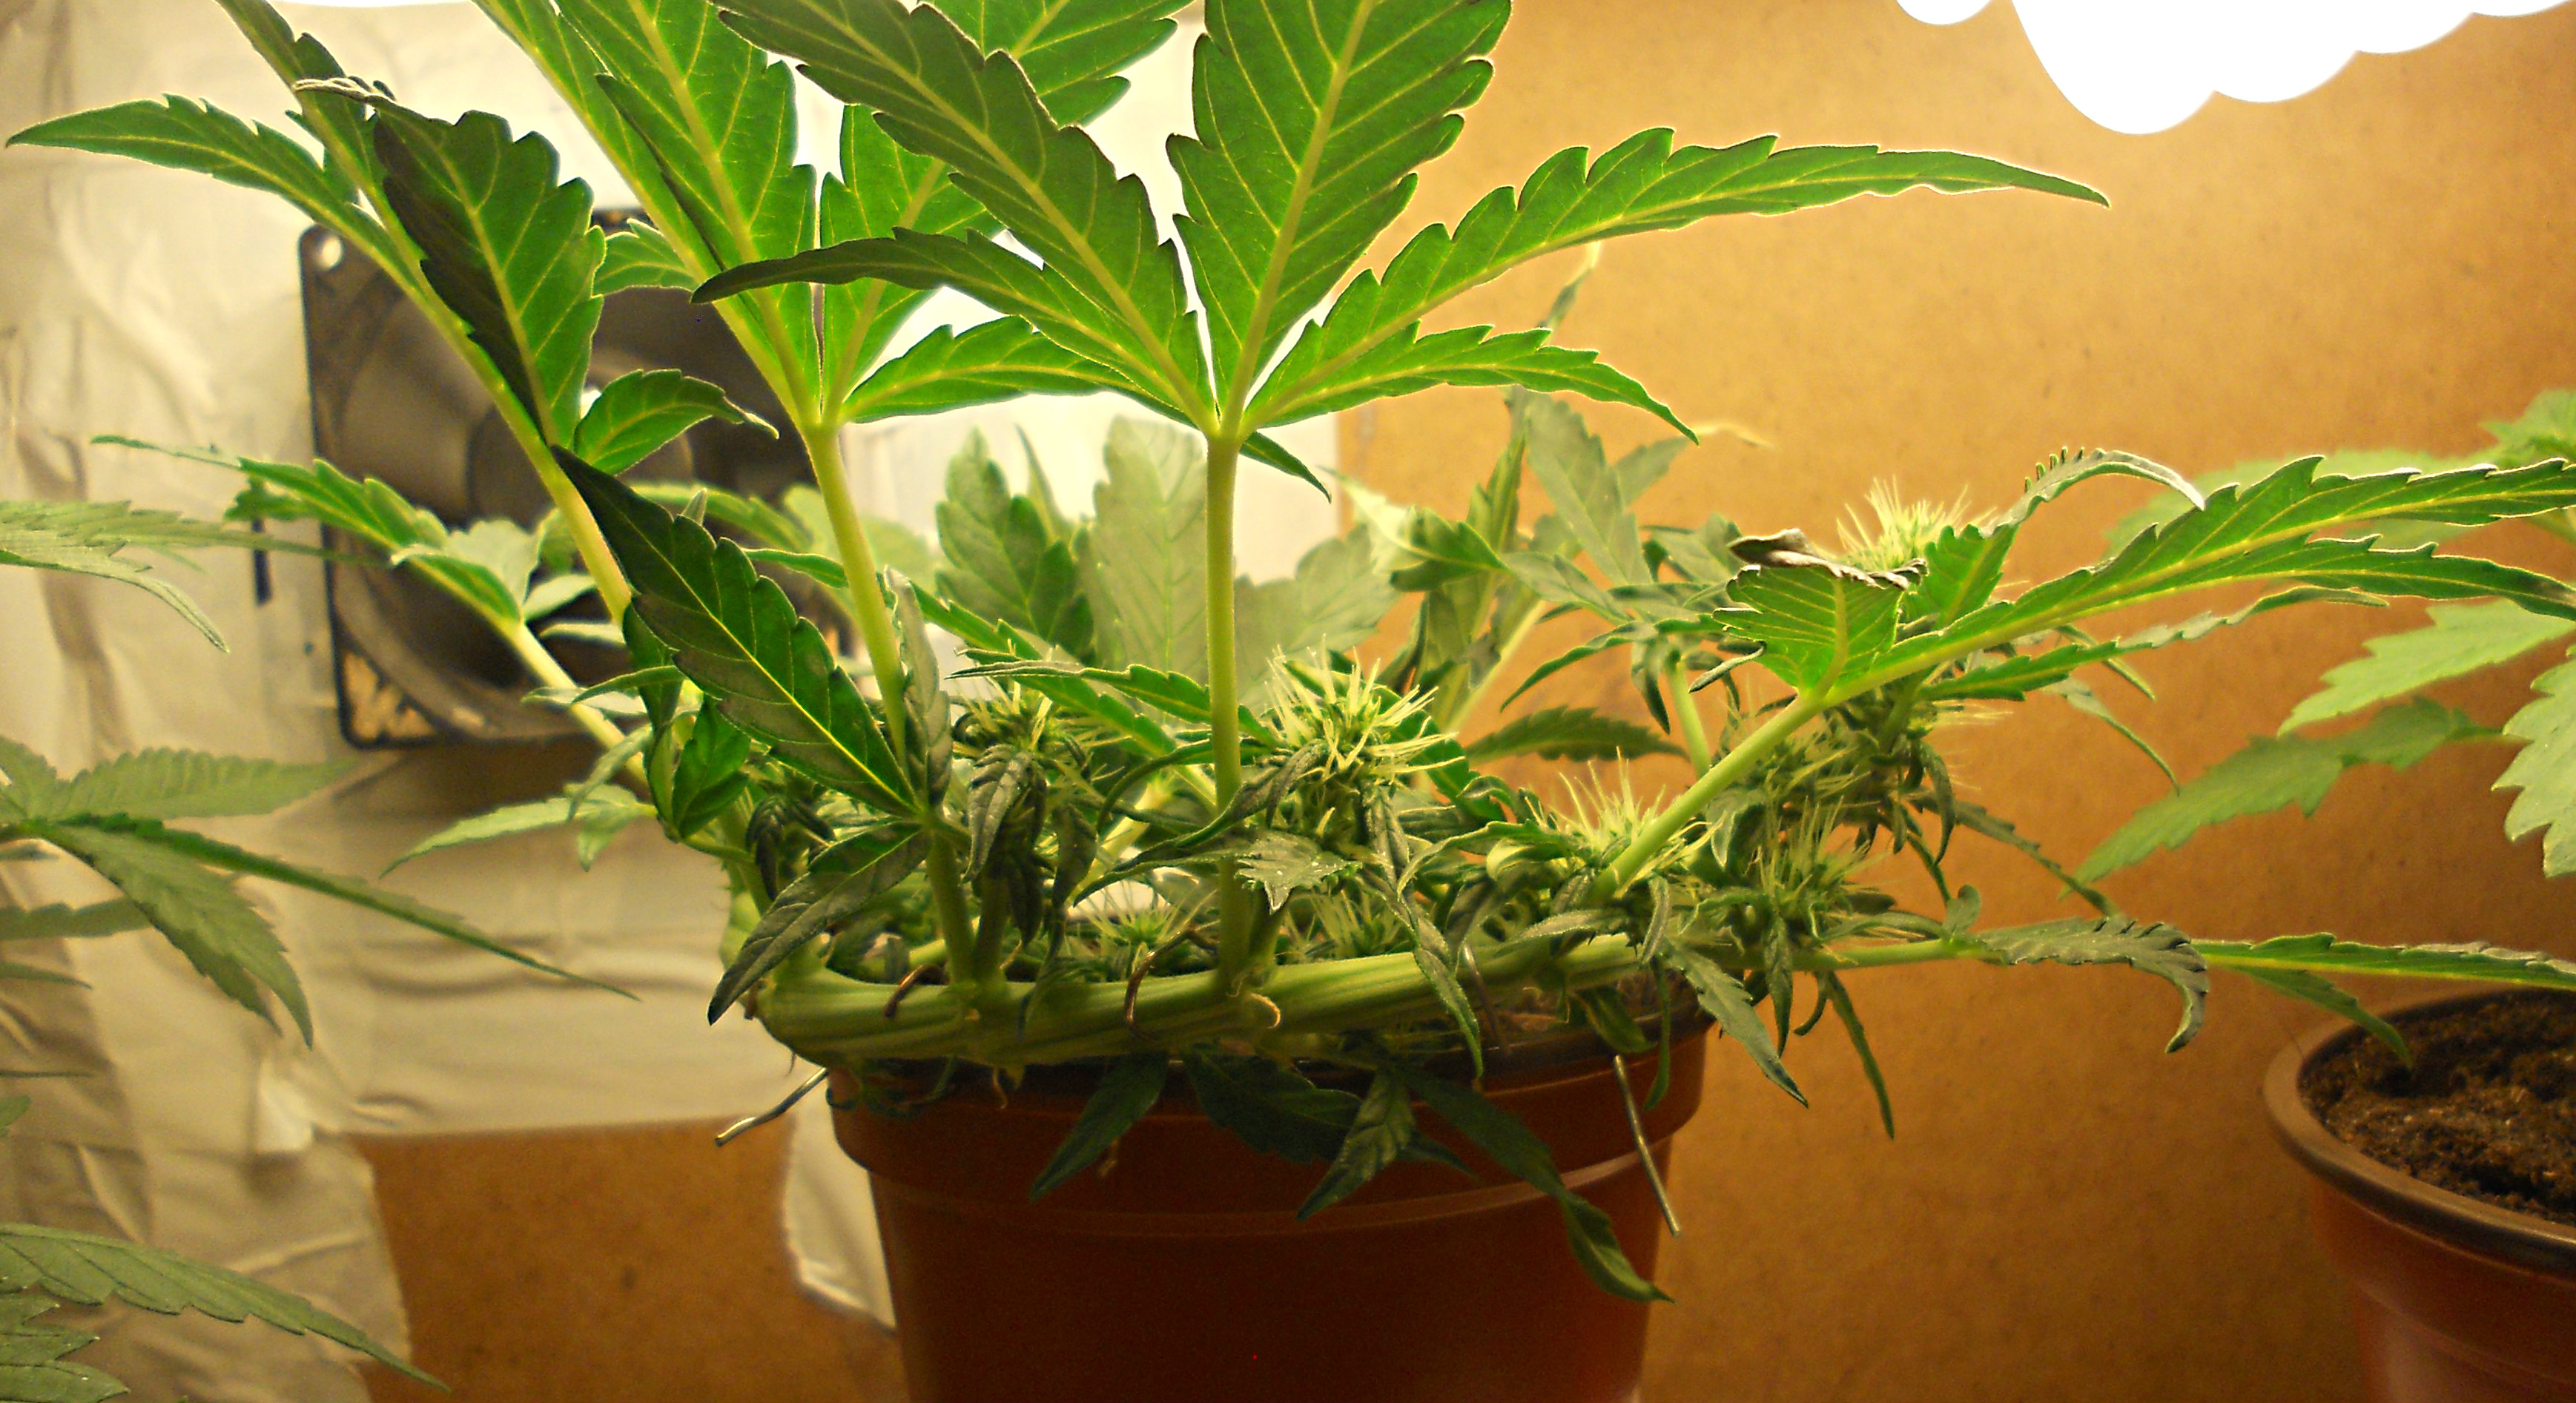 All about autos: an autoflowering grow guide - Growers ...